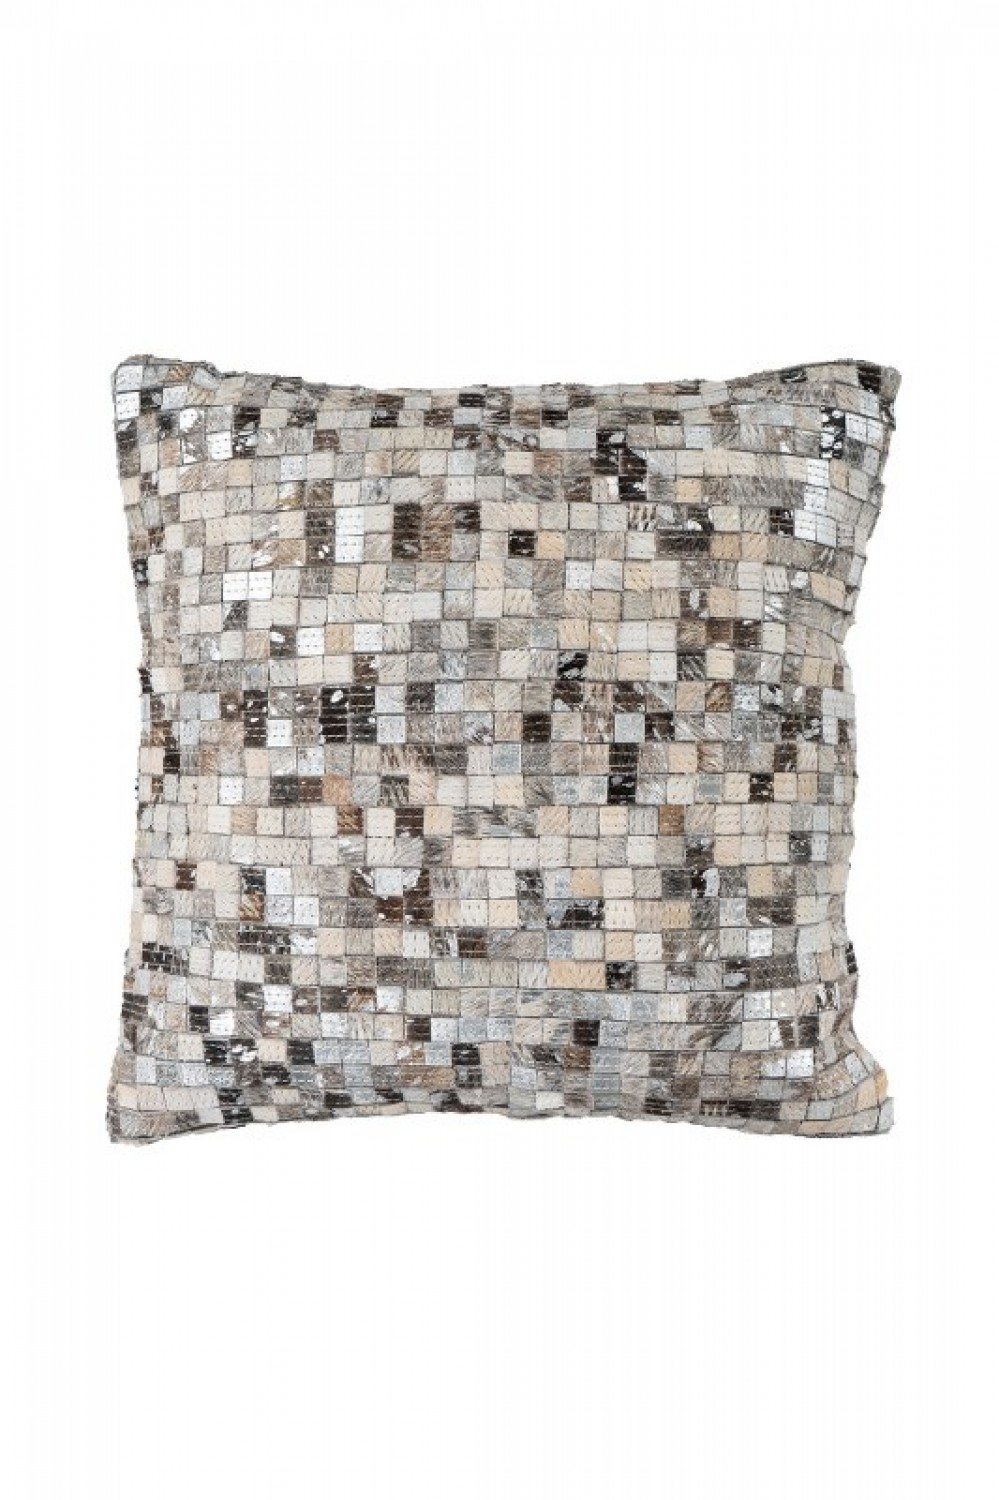 Finish Pillow 100 Grau / Silber